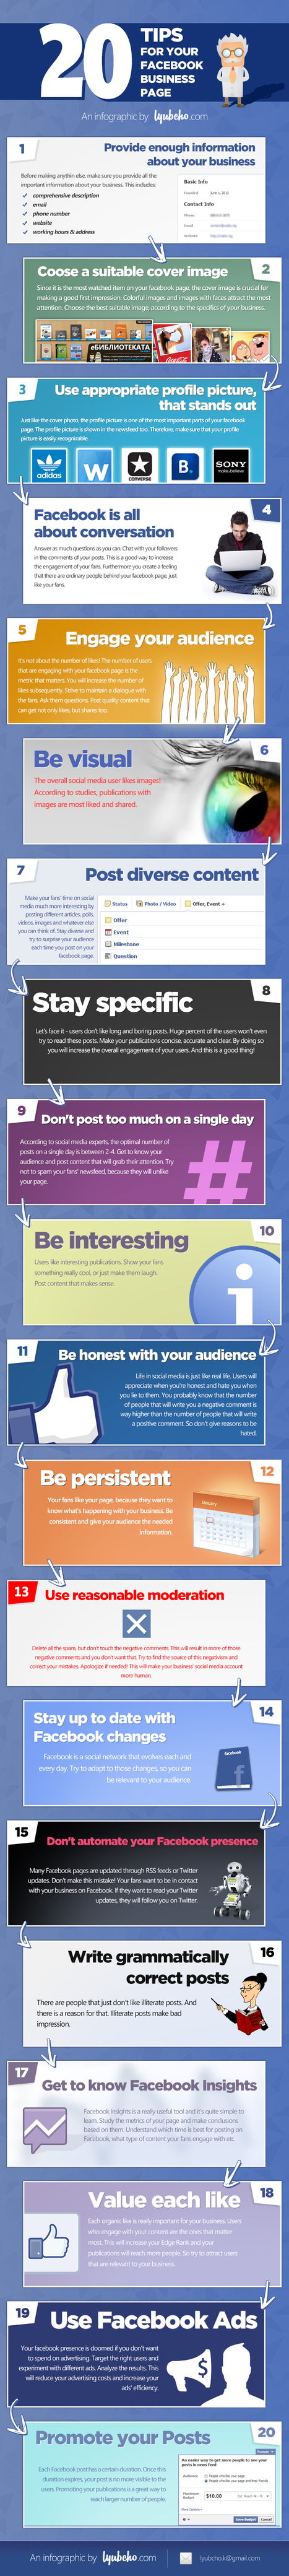 [Infographic] 20 Tips for your Facebook Business Page | Trucs&Astuces : veille2.0 | Scoop.it